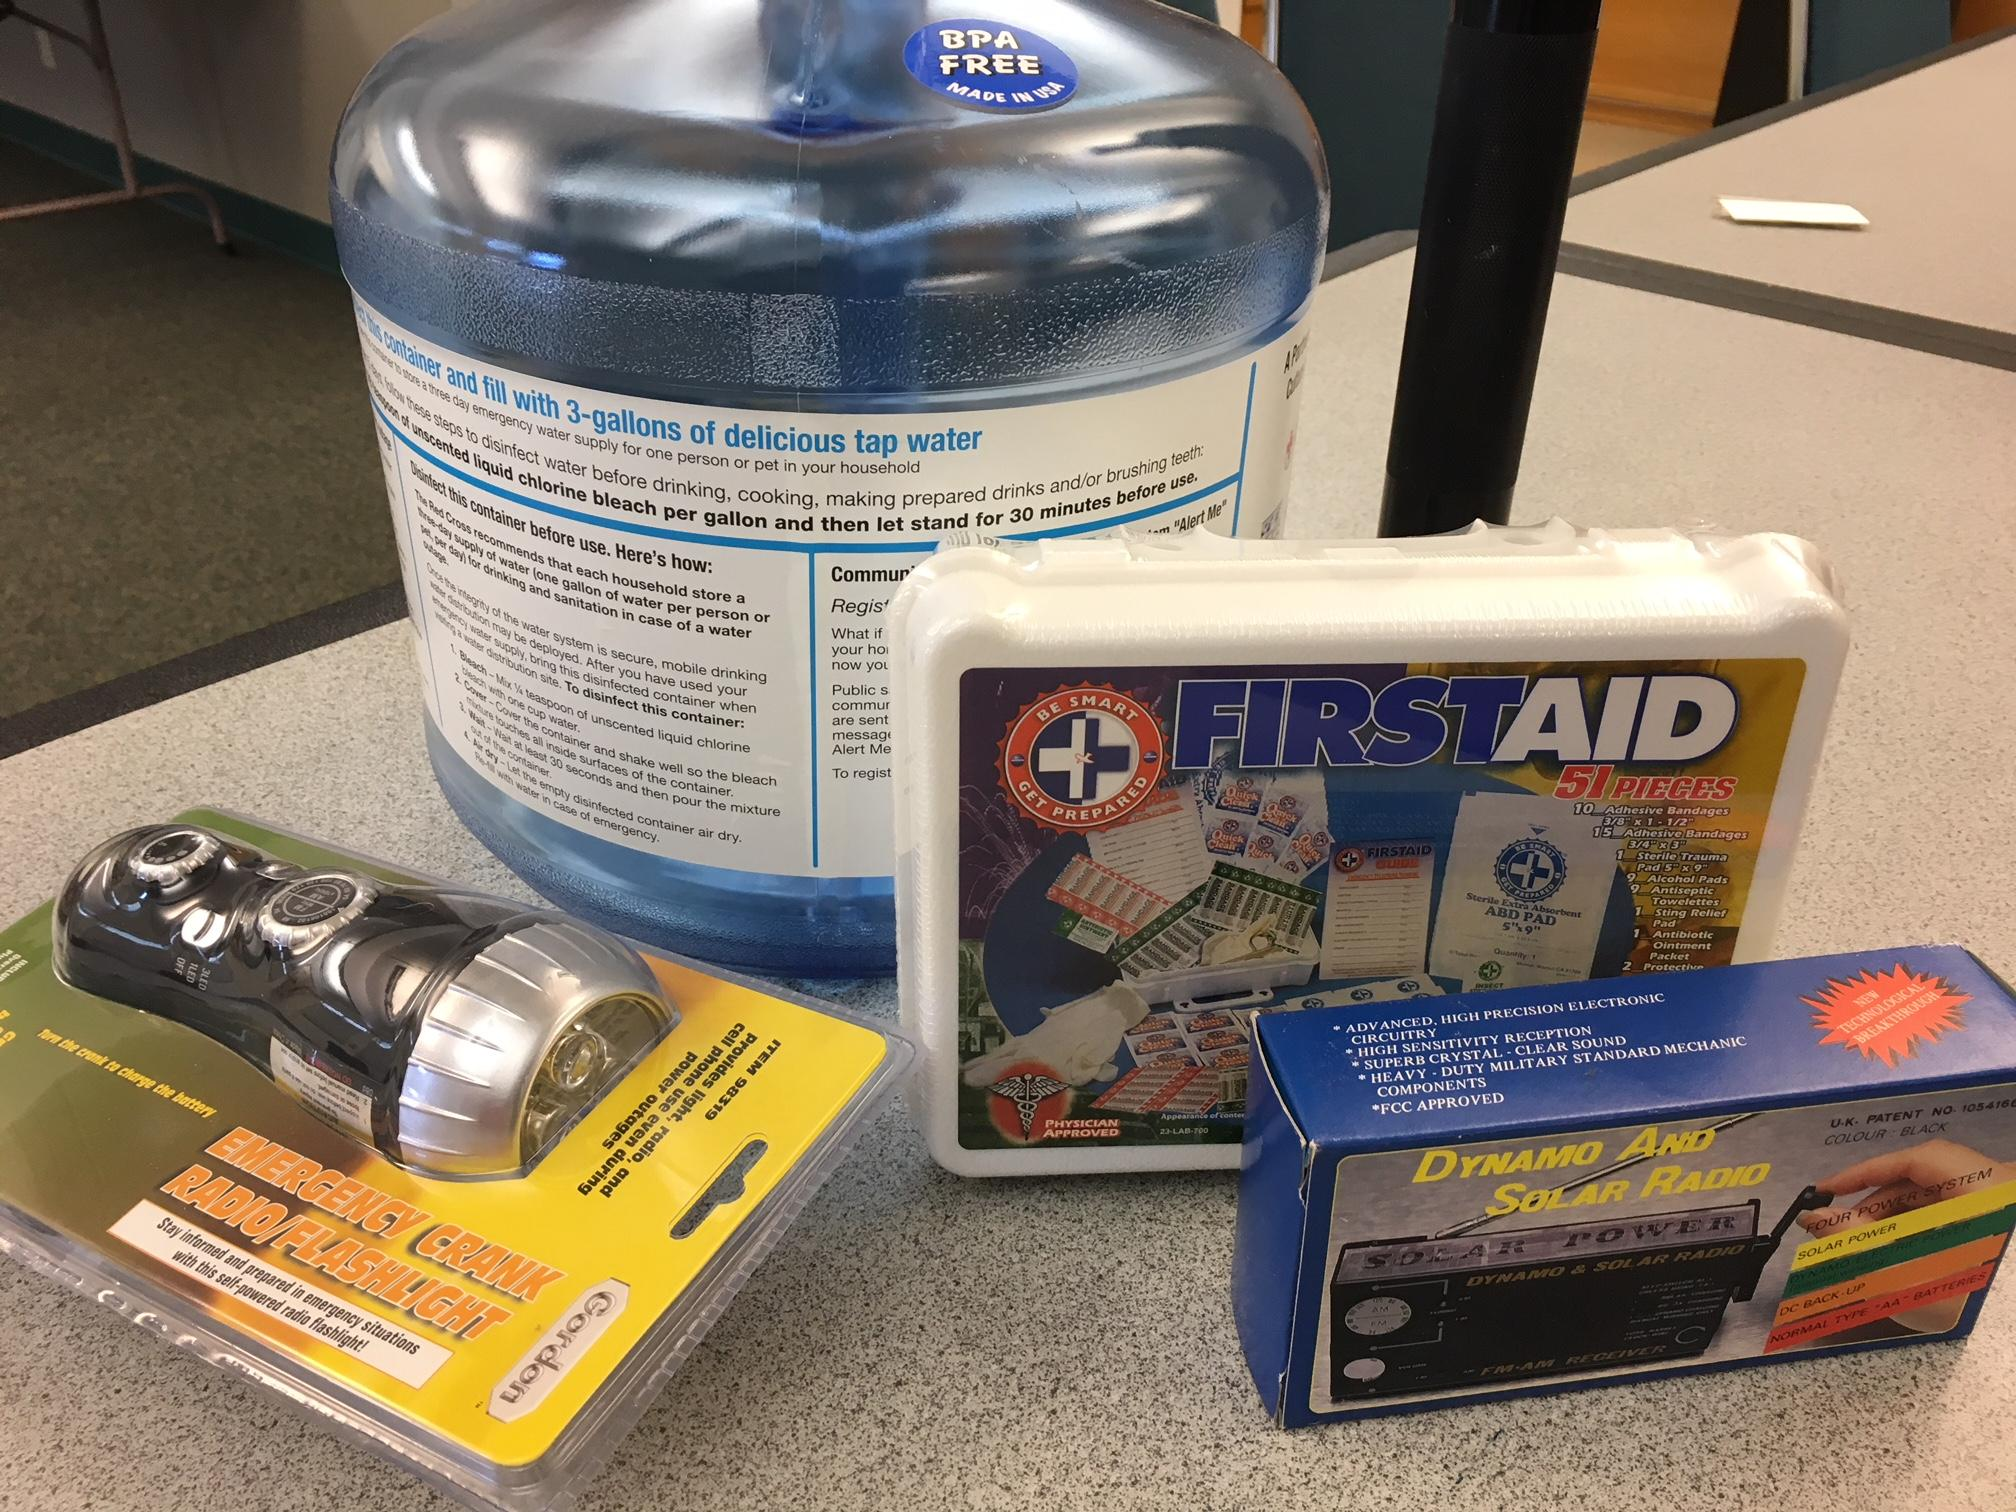 In case you lose power, residents should have at least three gallons of water per person in your home. She also asks that you have a first aid kit, a flashlight - and some patience. (SBG)